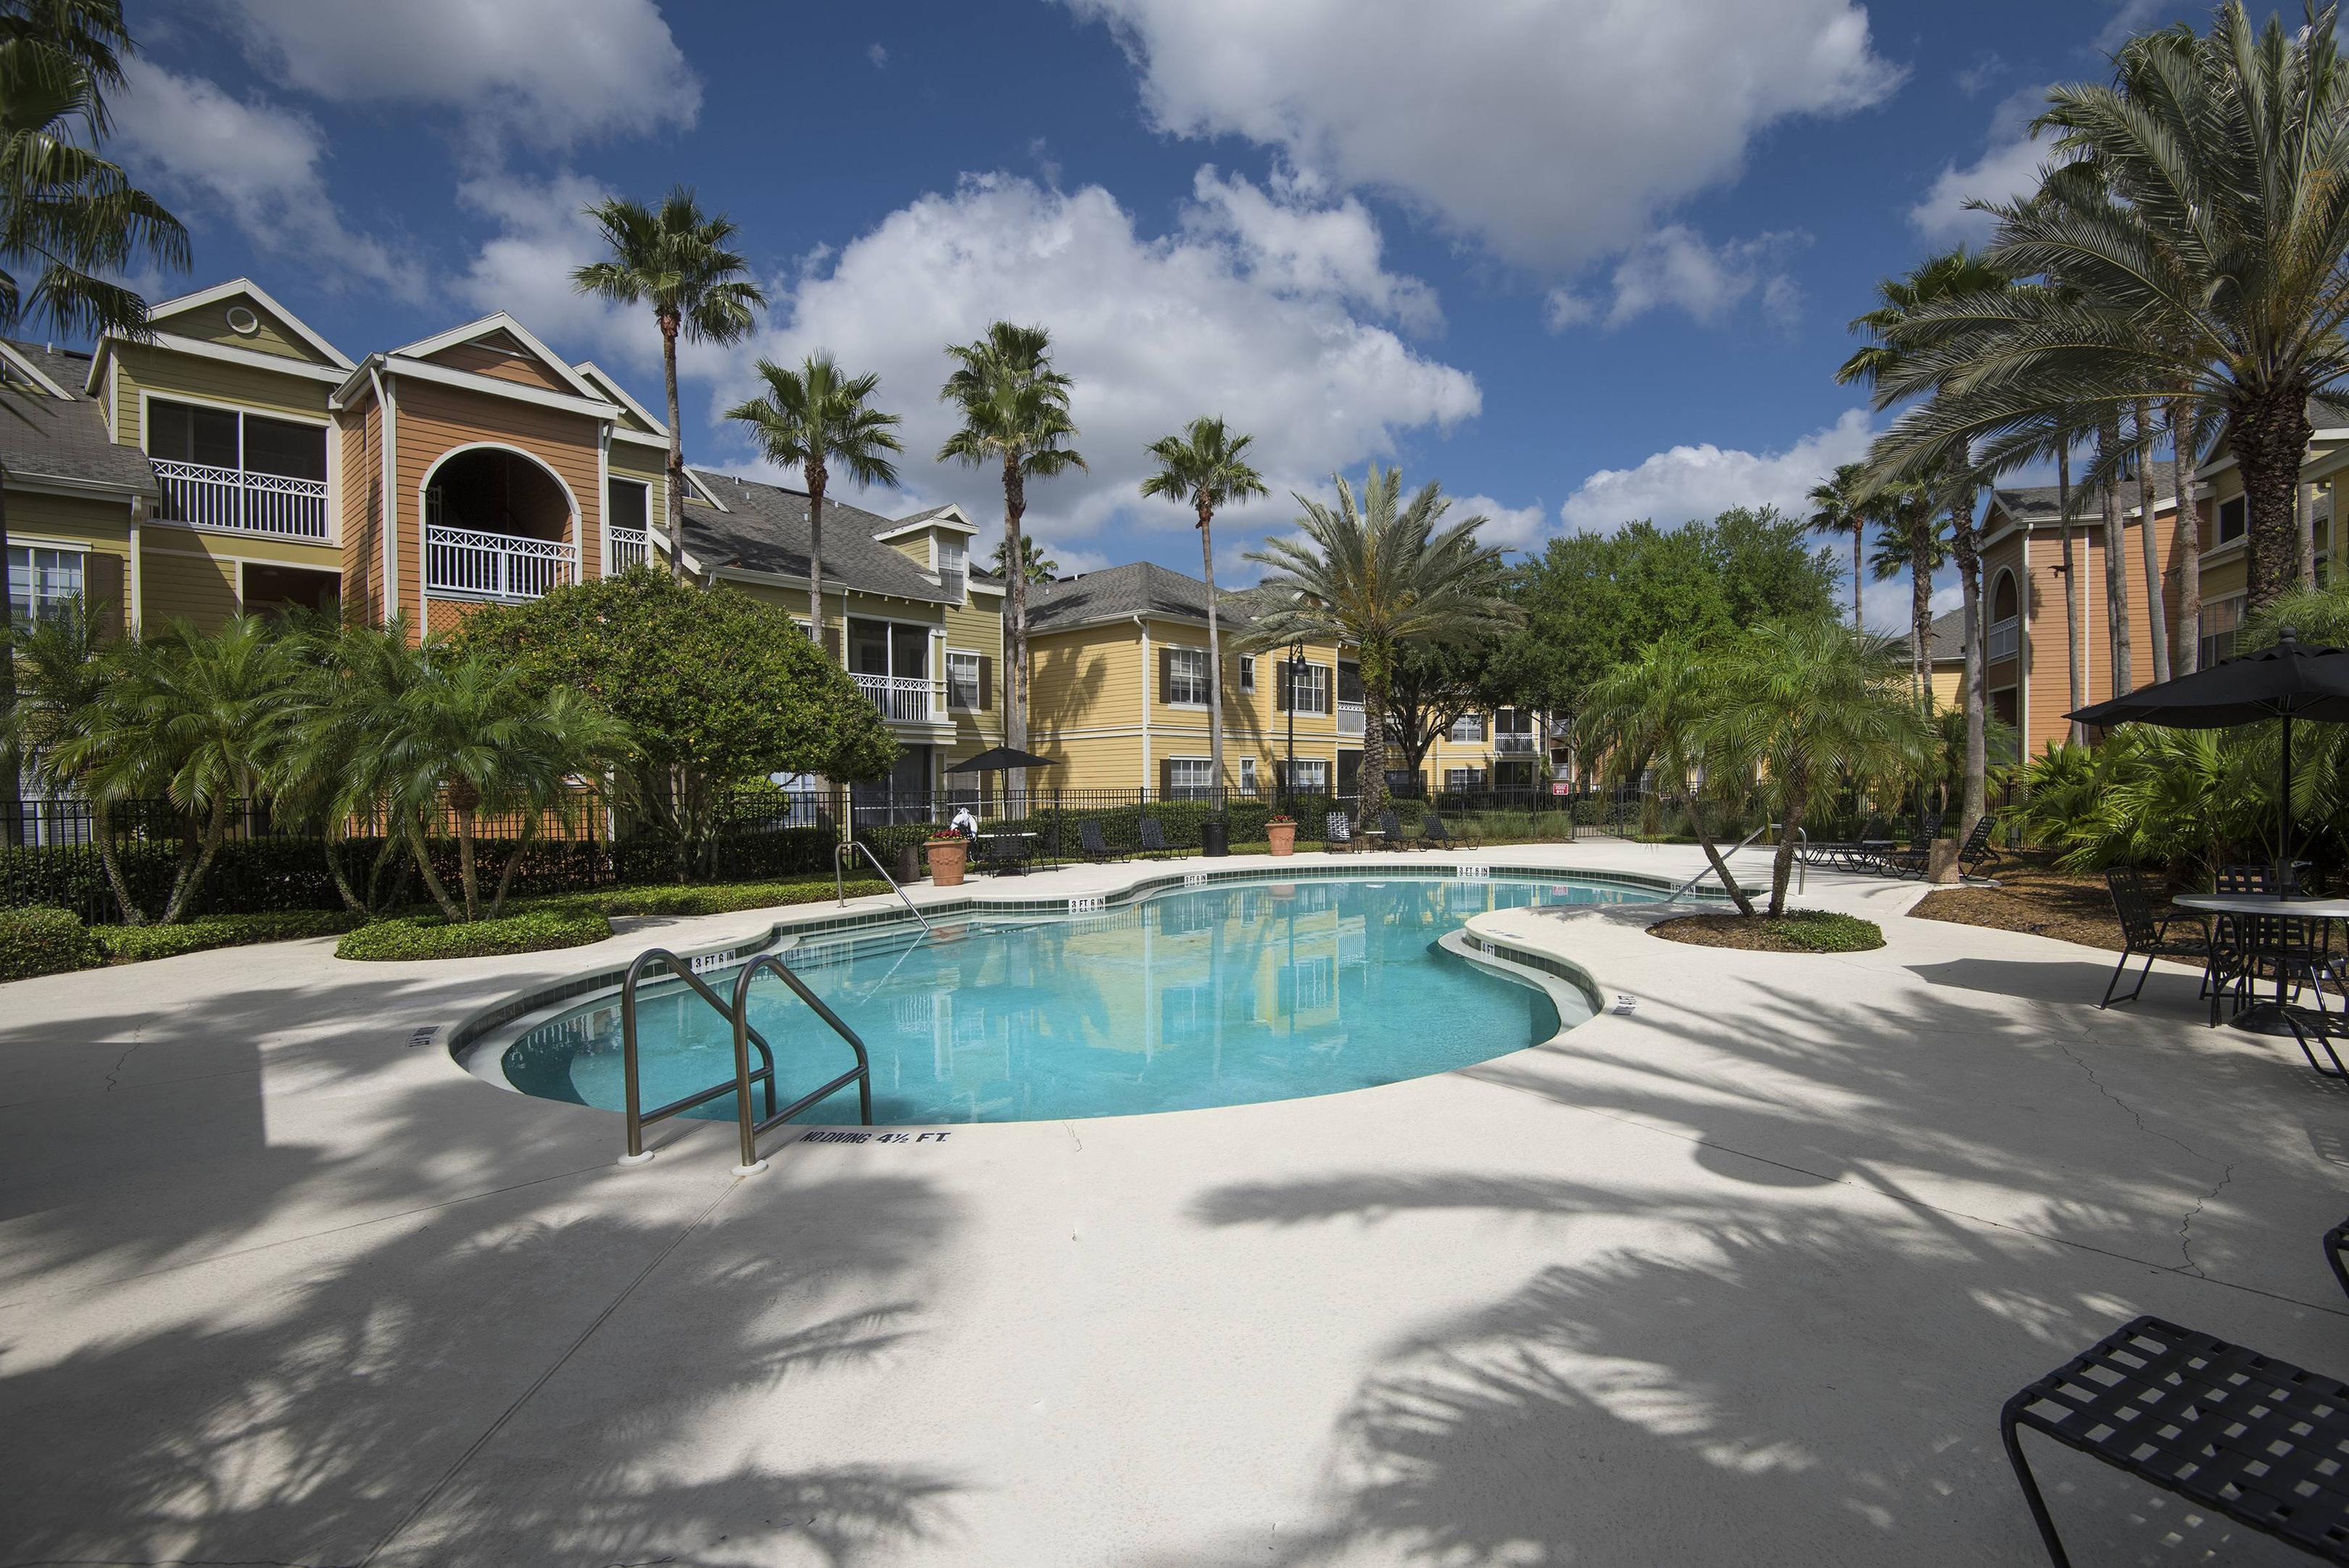 2 Bedroom Rentals Orlando Fl Fresh 2 Bedroom Apartments